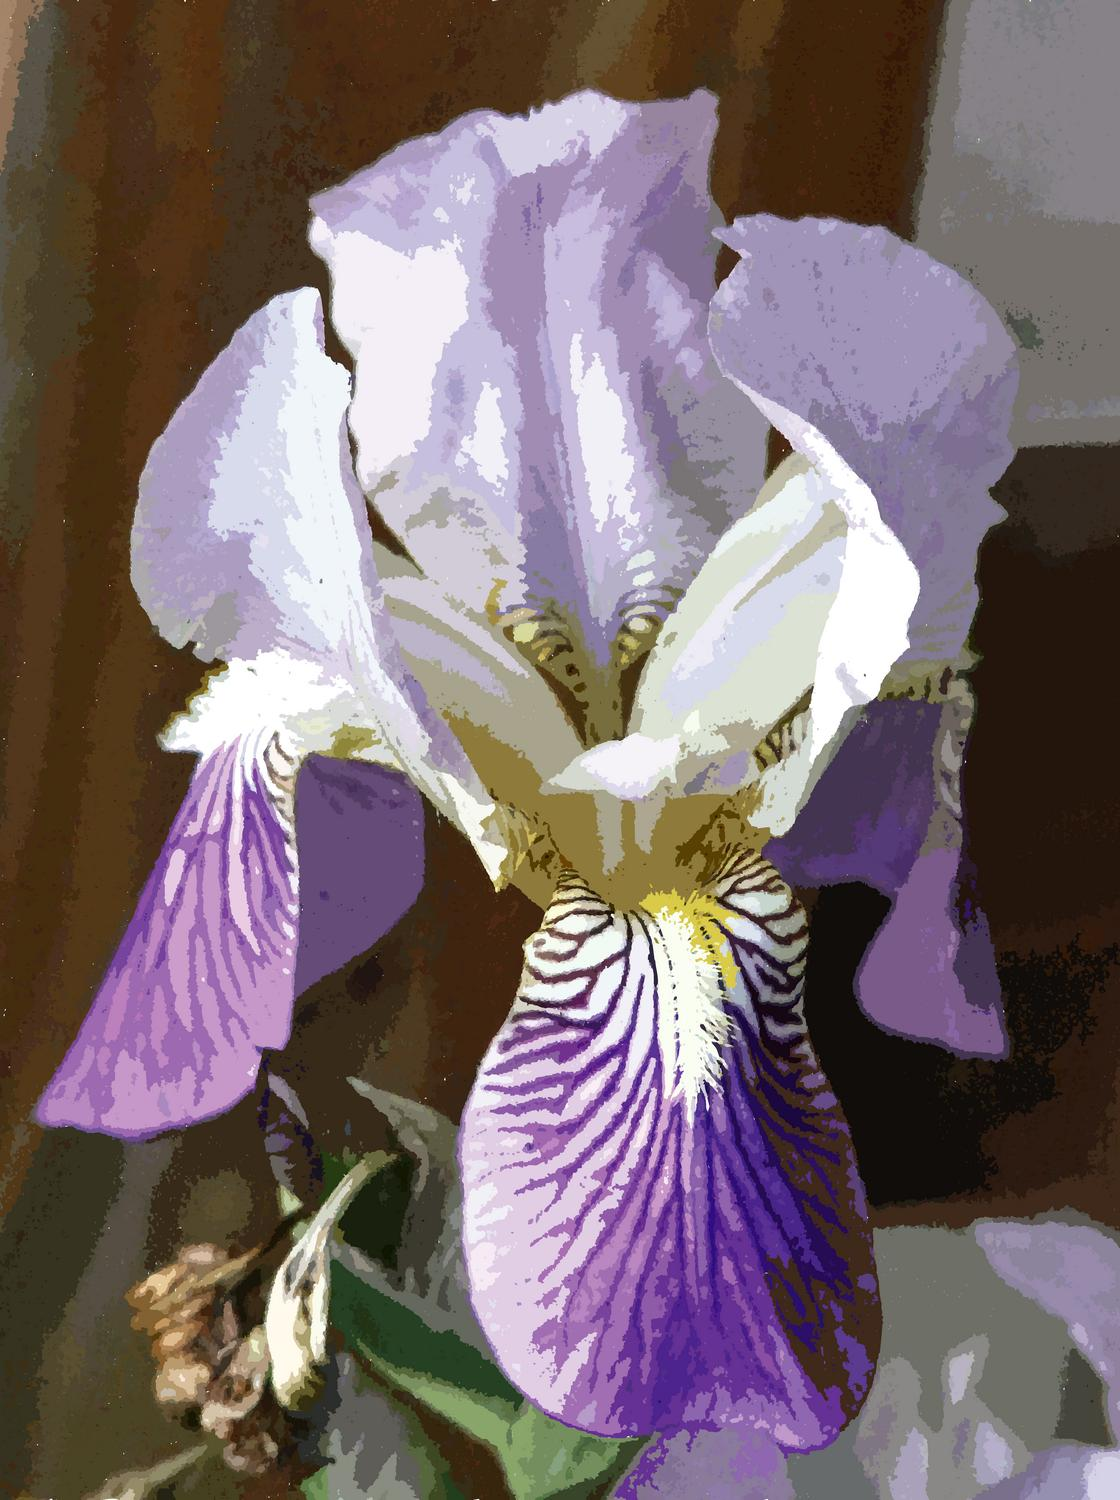 - The iris converted to PostScript. Now it consists of shapes filled with solid colors. - Panasonic DMC-FZ18 - iris - many variations on one photograph - Tony Karp, design, art, photography, techno-impressionist, techno-impressionism, aerial photography , drone , drones , dji , mavic pro , video , 3D printing - Books -